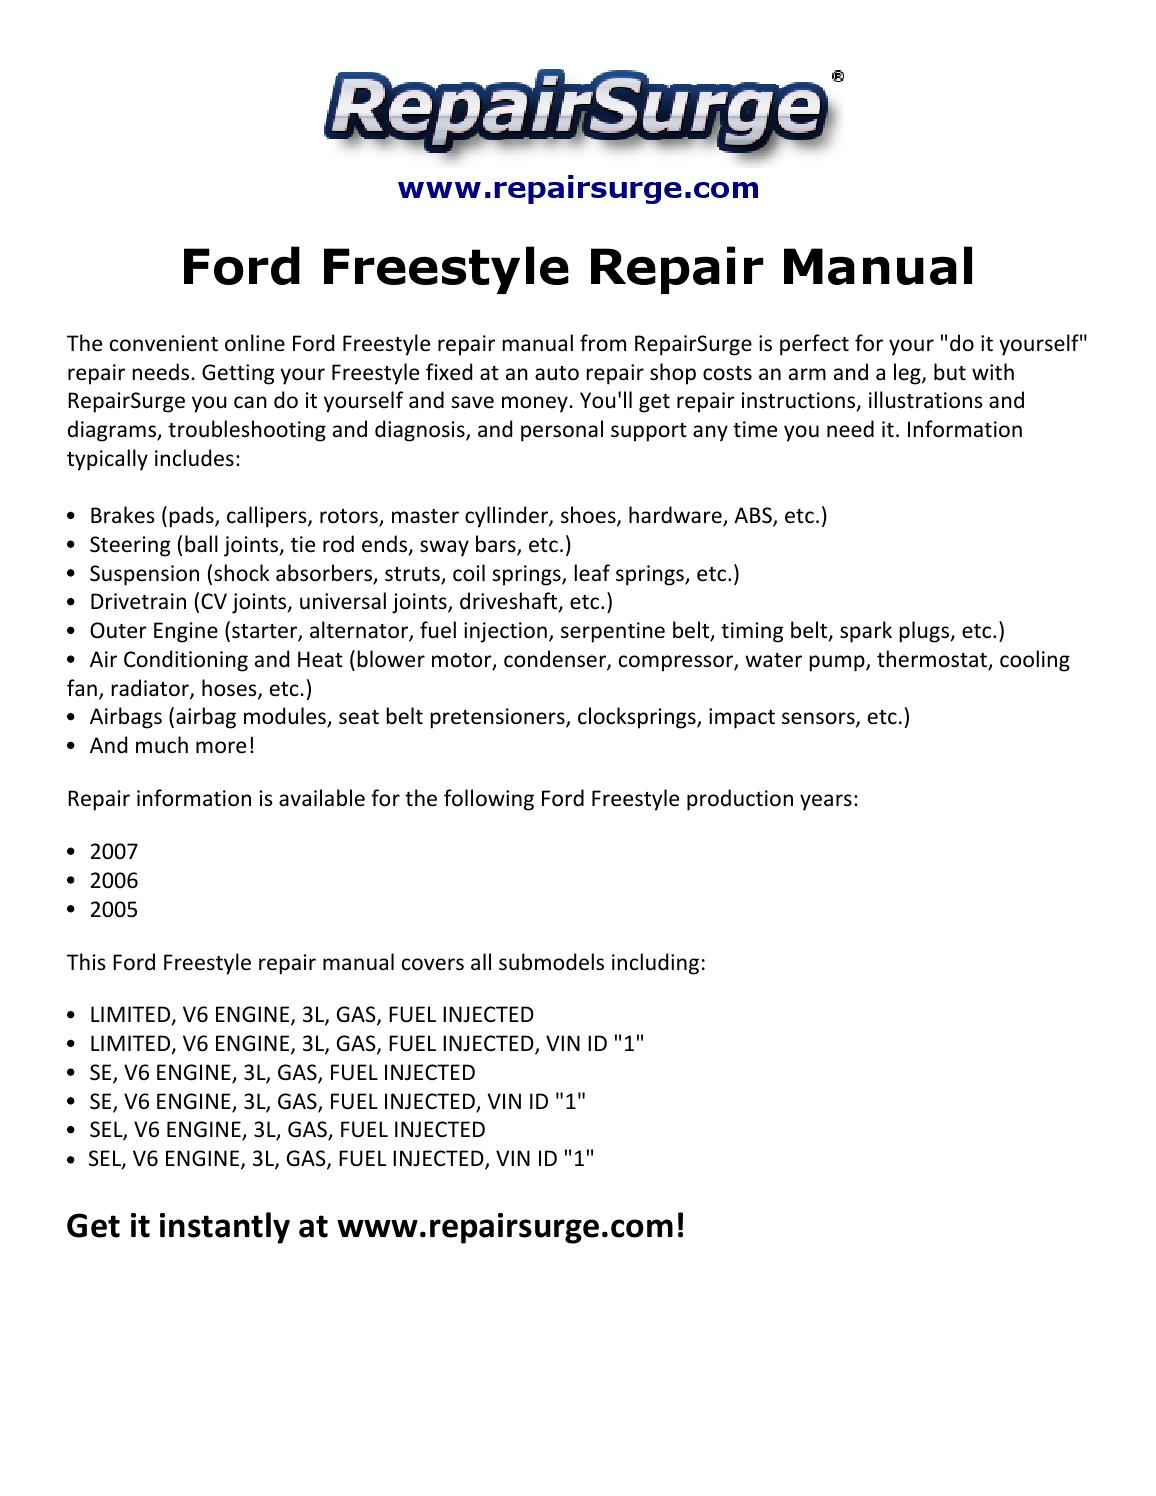 2007 Ford Freestyle Engine Diagram Wiring Library 2004 Freestar Harness Repair Manual 2005 By Macy Thomas168 Issuu